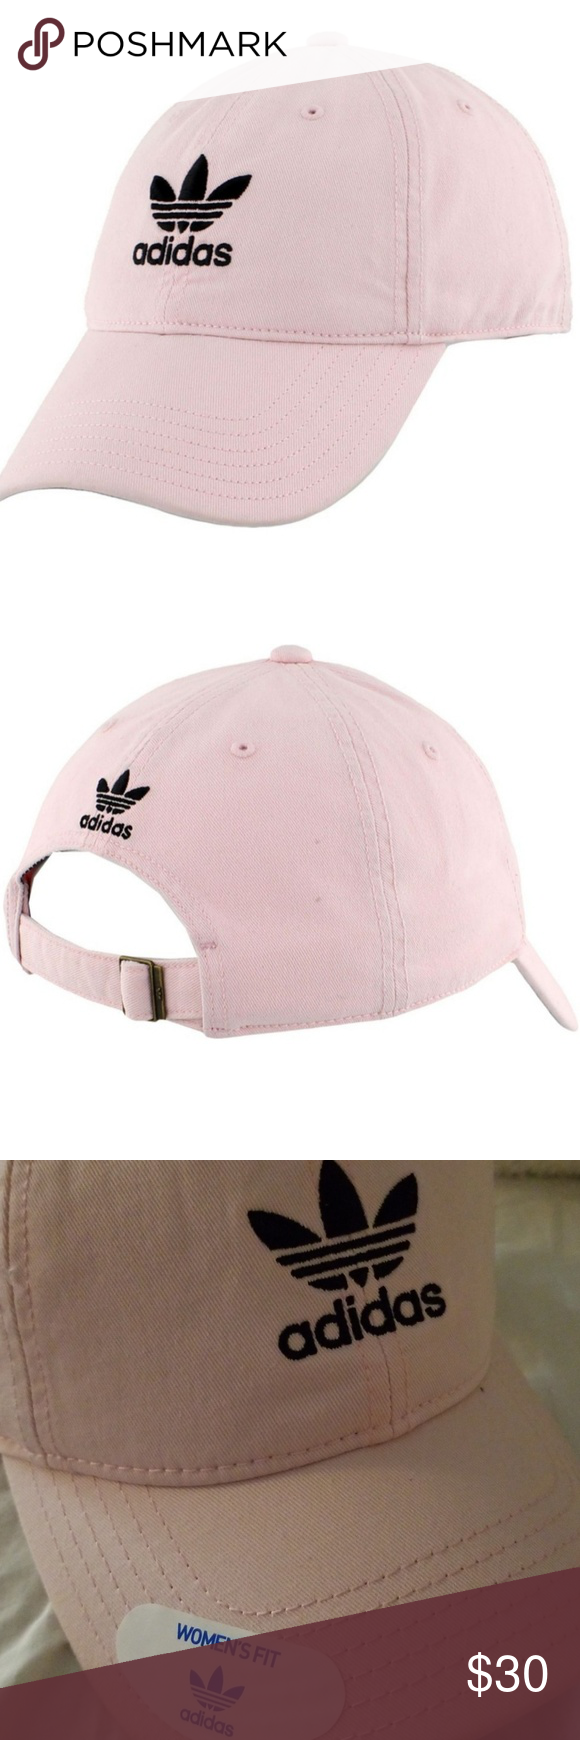 498b03cf732 Adidas Womens Fit Baseball Cap Hat Fresh light Pink womens fit hat adidas  Accessories Hats